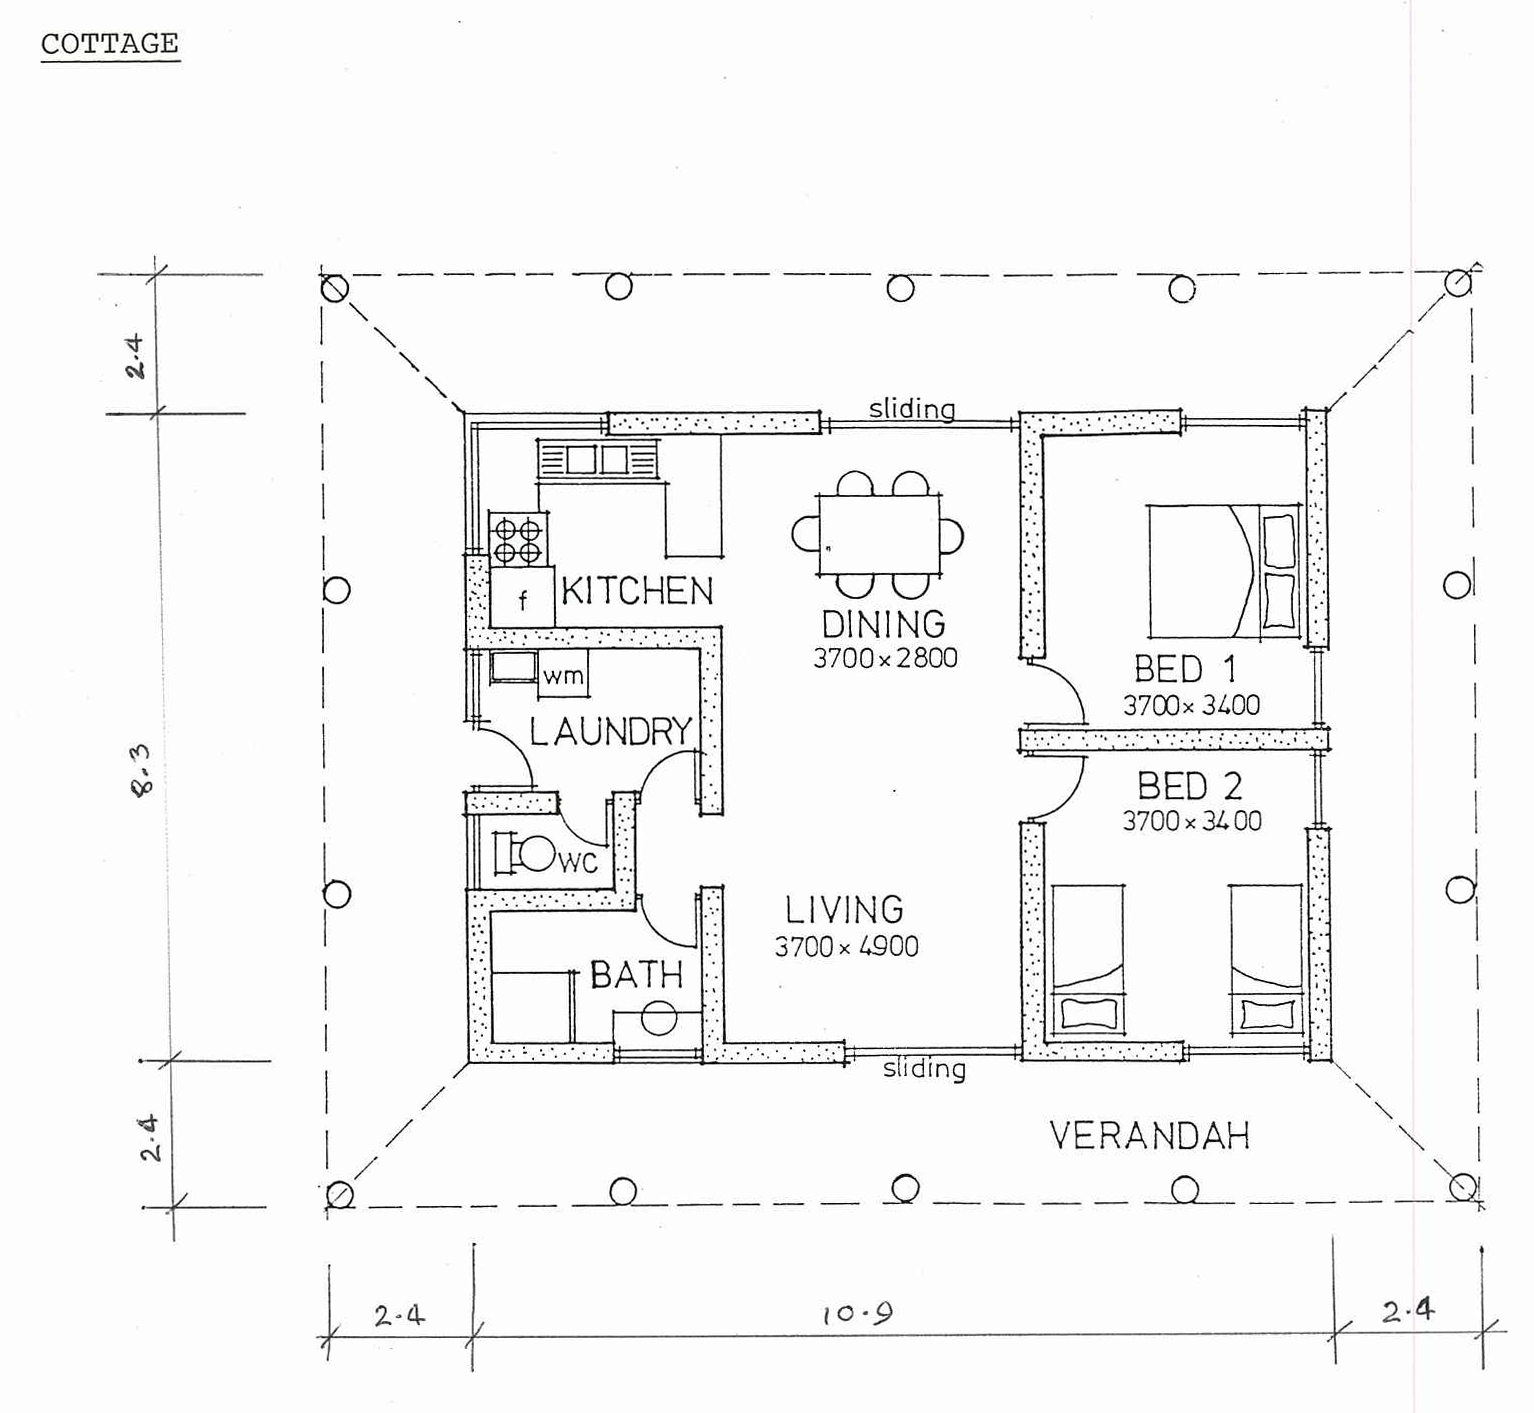 Image result for rammed earth floor plans | Drawing house ... on passive solar home floor plans, timber frame home floor plans, earthship home floor plans, adobe home floor plans, shipping container home floor plans, concrete home floor plans, cob home floor plans, cordwood home floor plans, earthbag home floor plans, straw bale home floor plans,